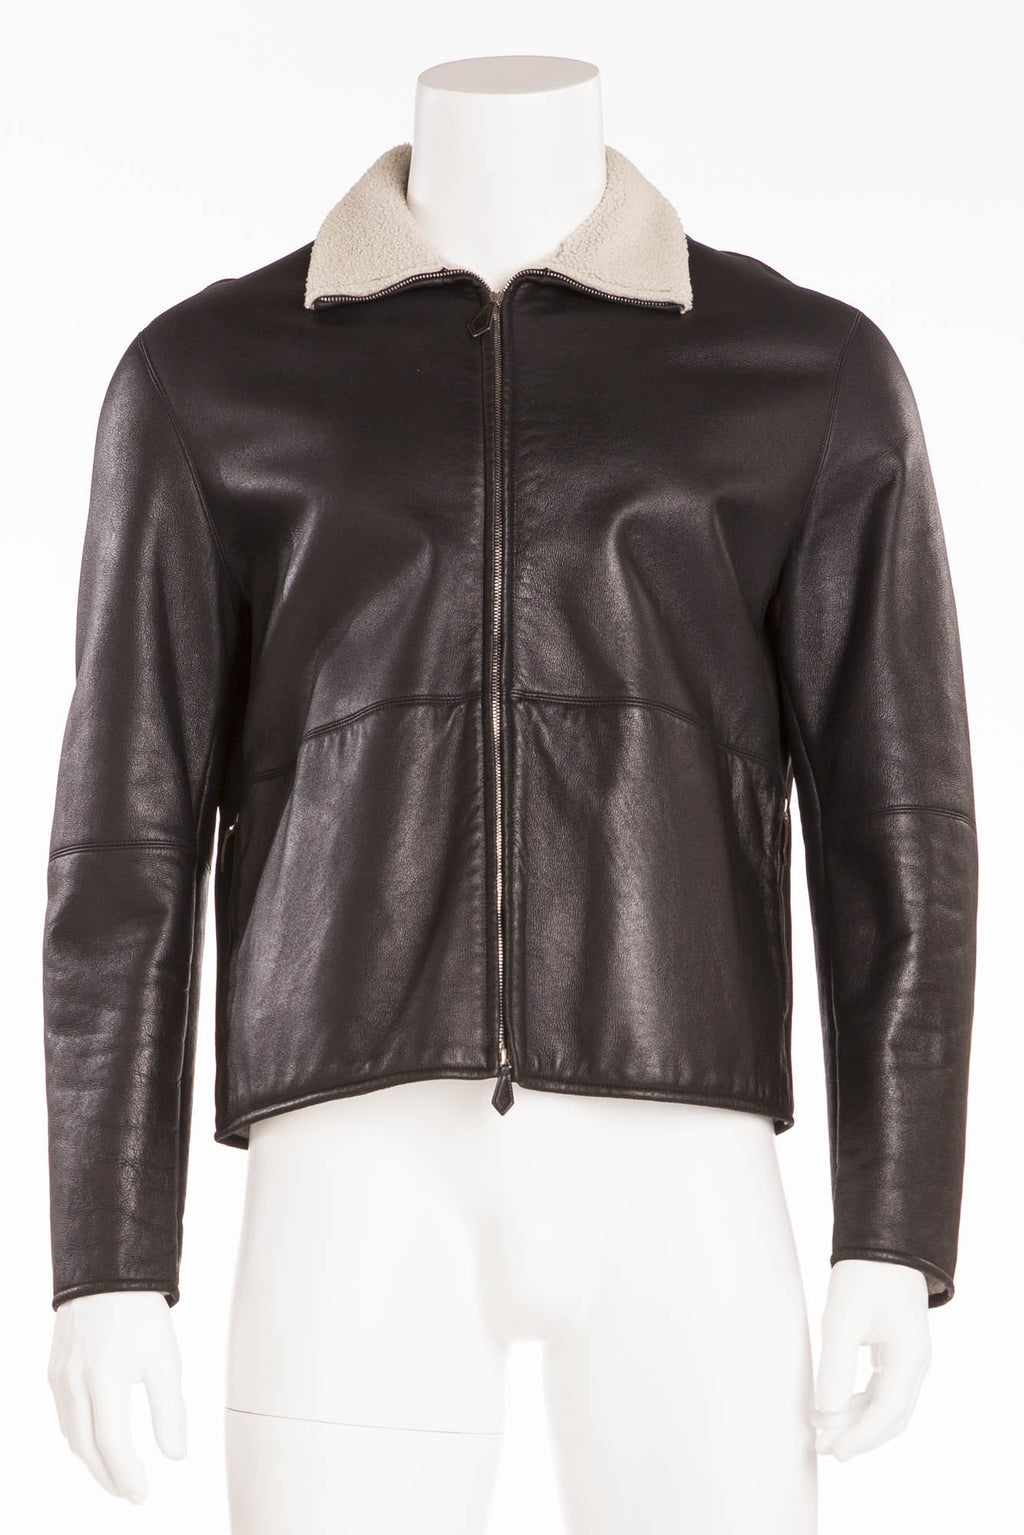 Hermes - Mens Black Zip Up Leather Jacket - FR 54